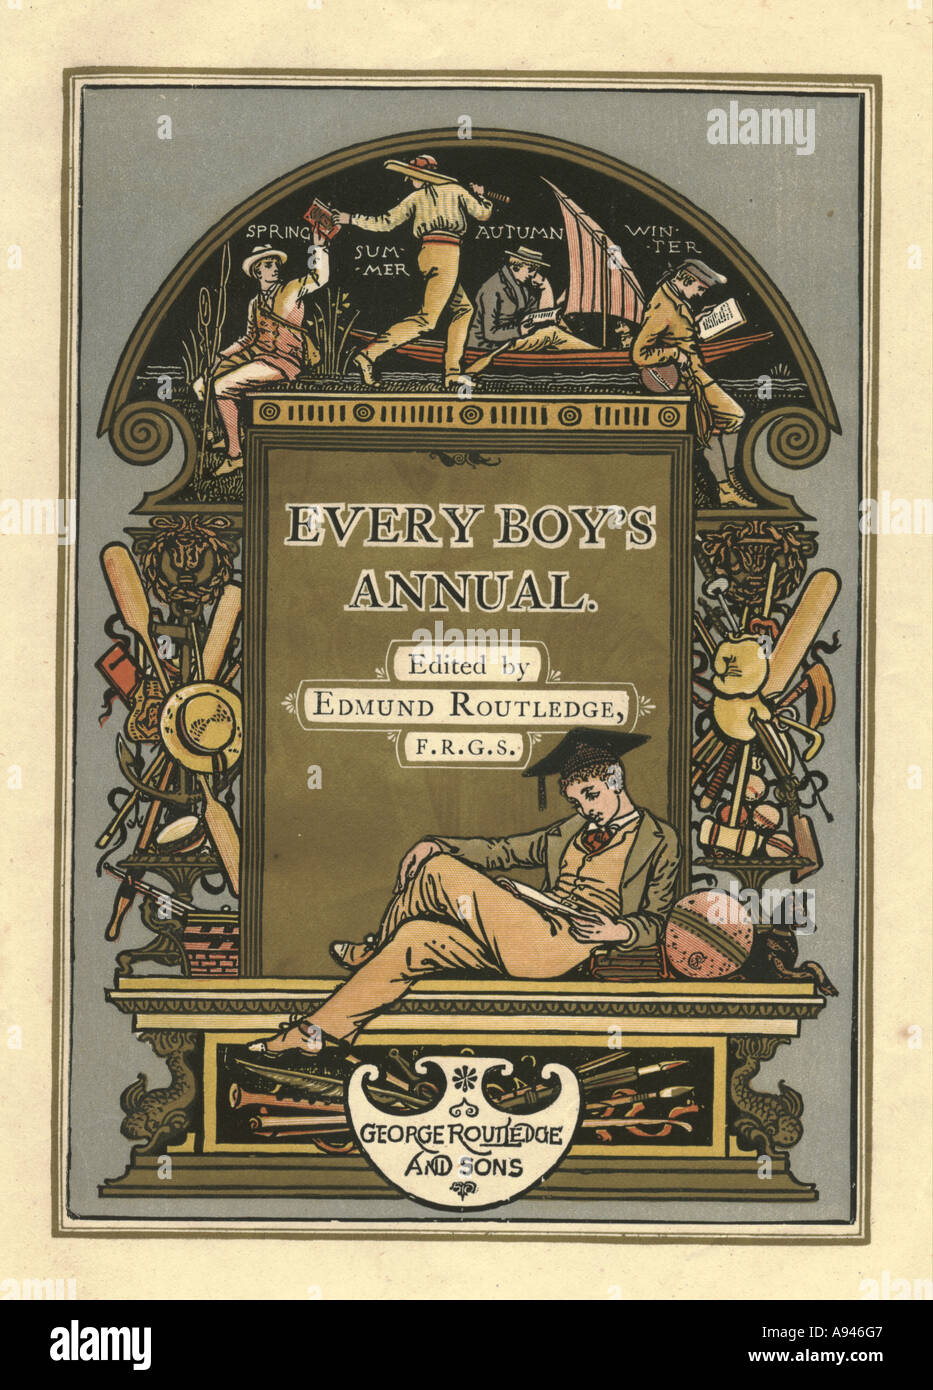 Every Boy's Annual frontispiece 1862-4 designed by Walter Crane - Stock Image